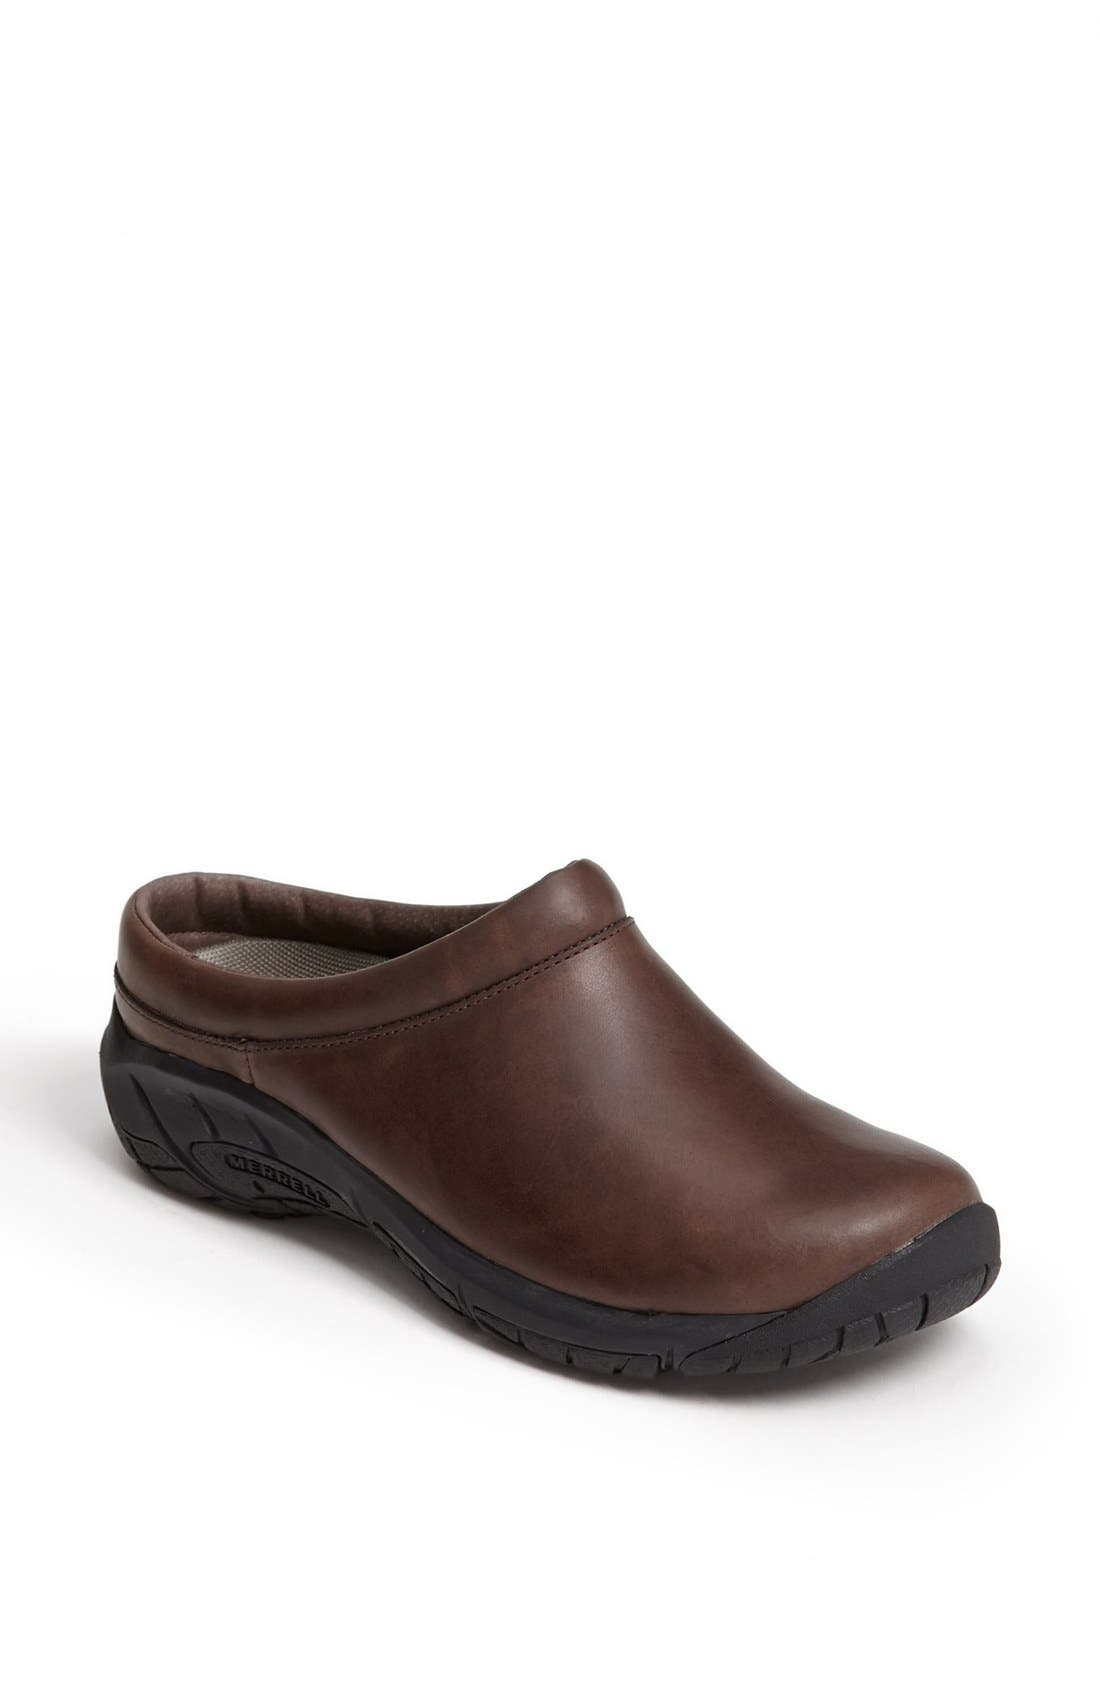 Alternate Image 1 Selected - Merrell 'Encore Nova' Slip-On